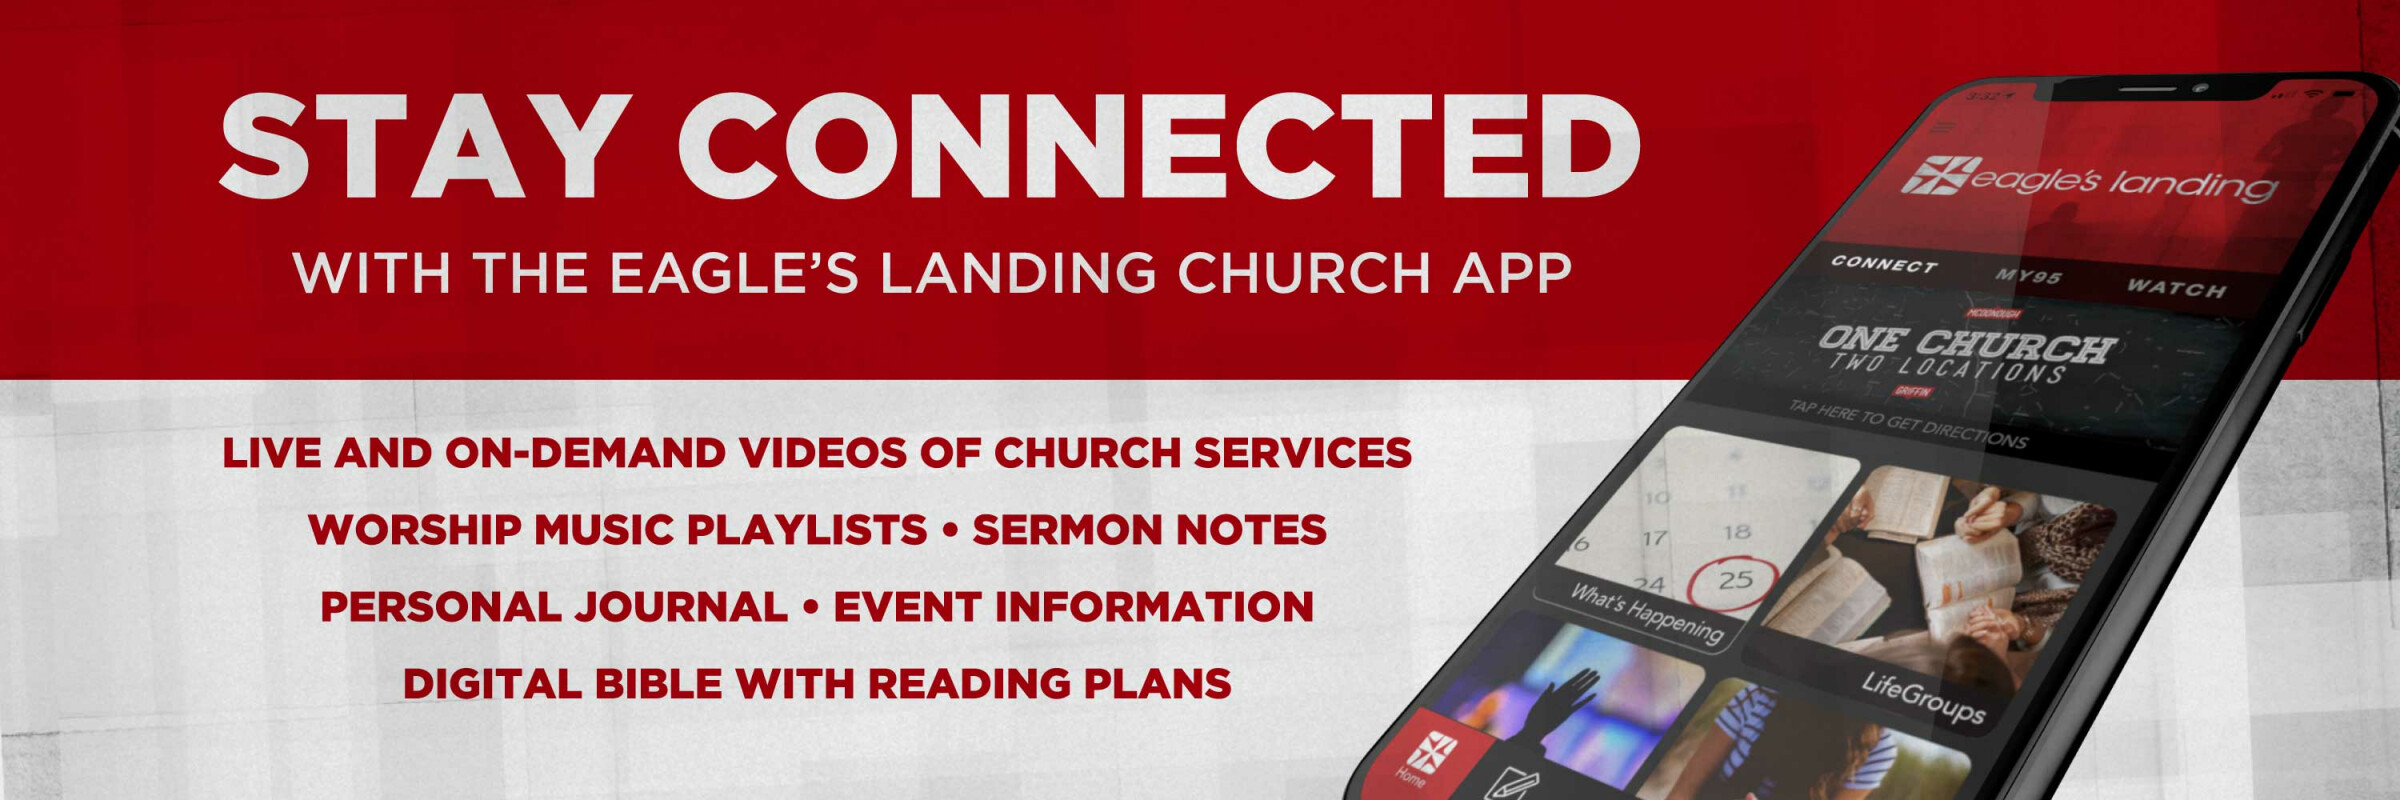 Mcdonough | Eagle's Landing First Baptist Church